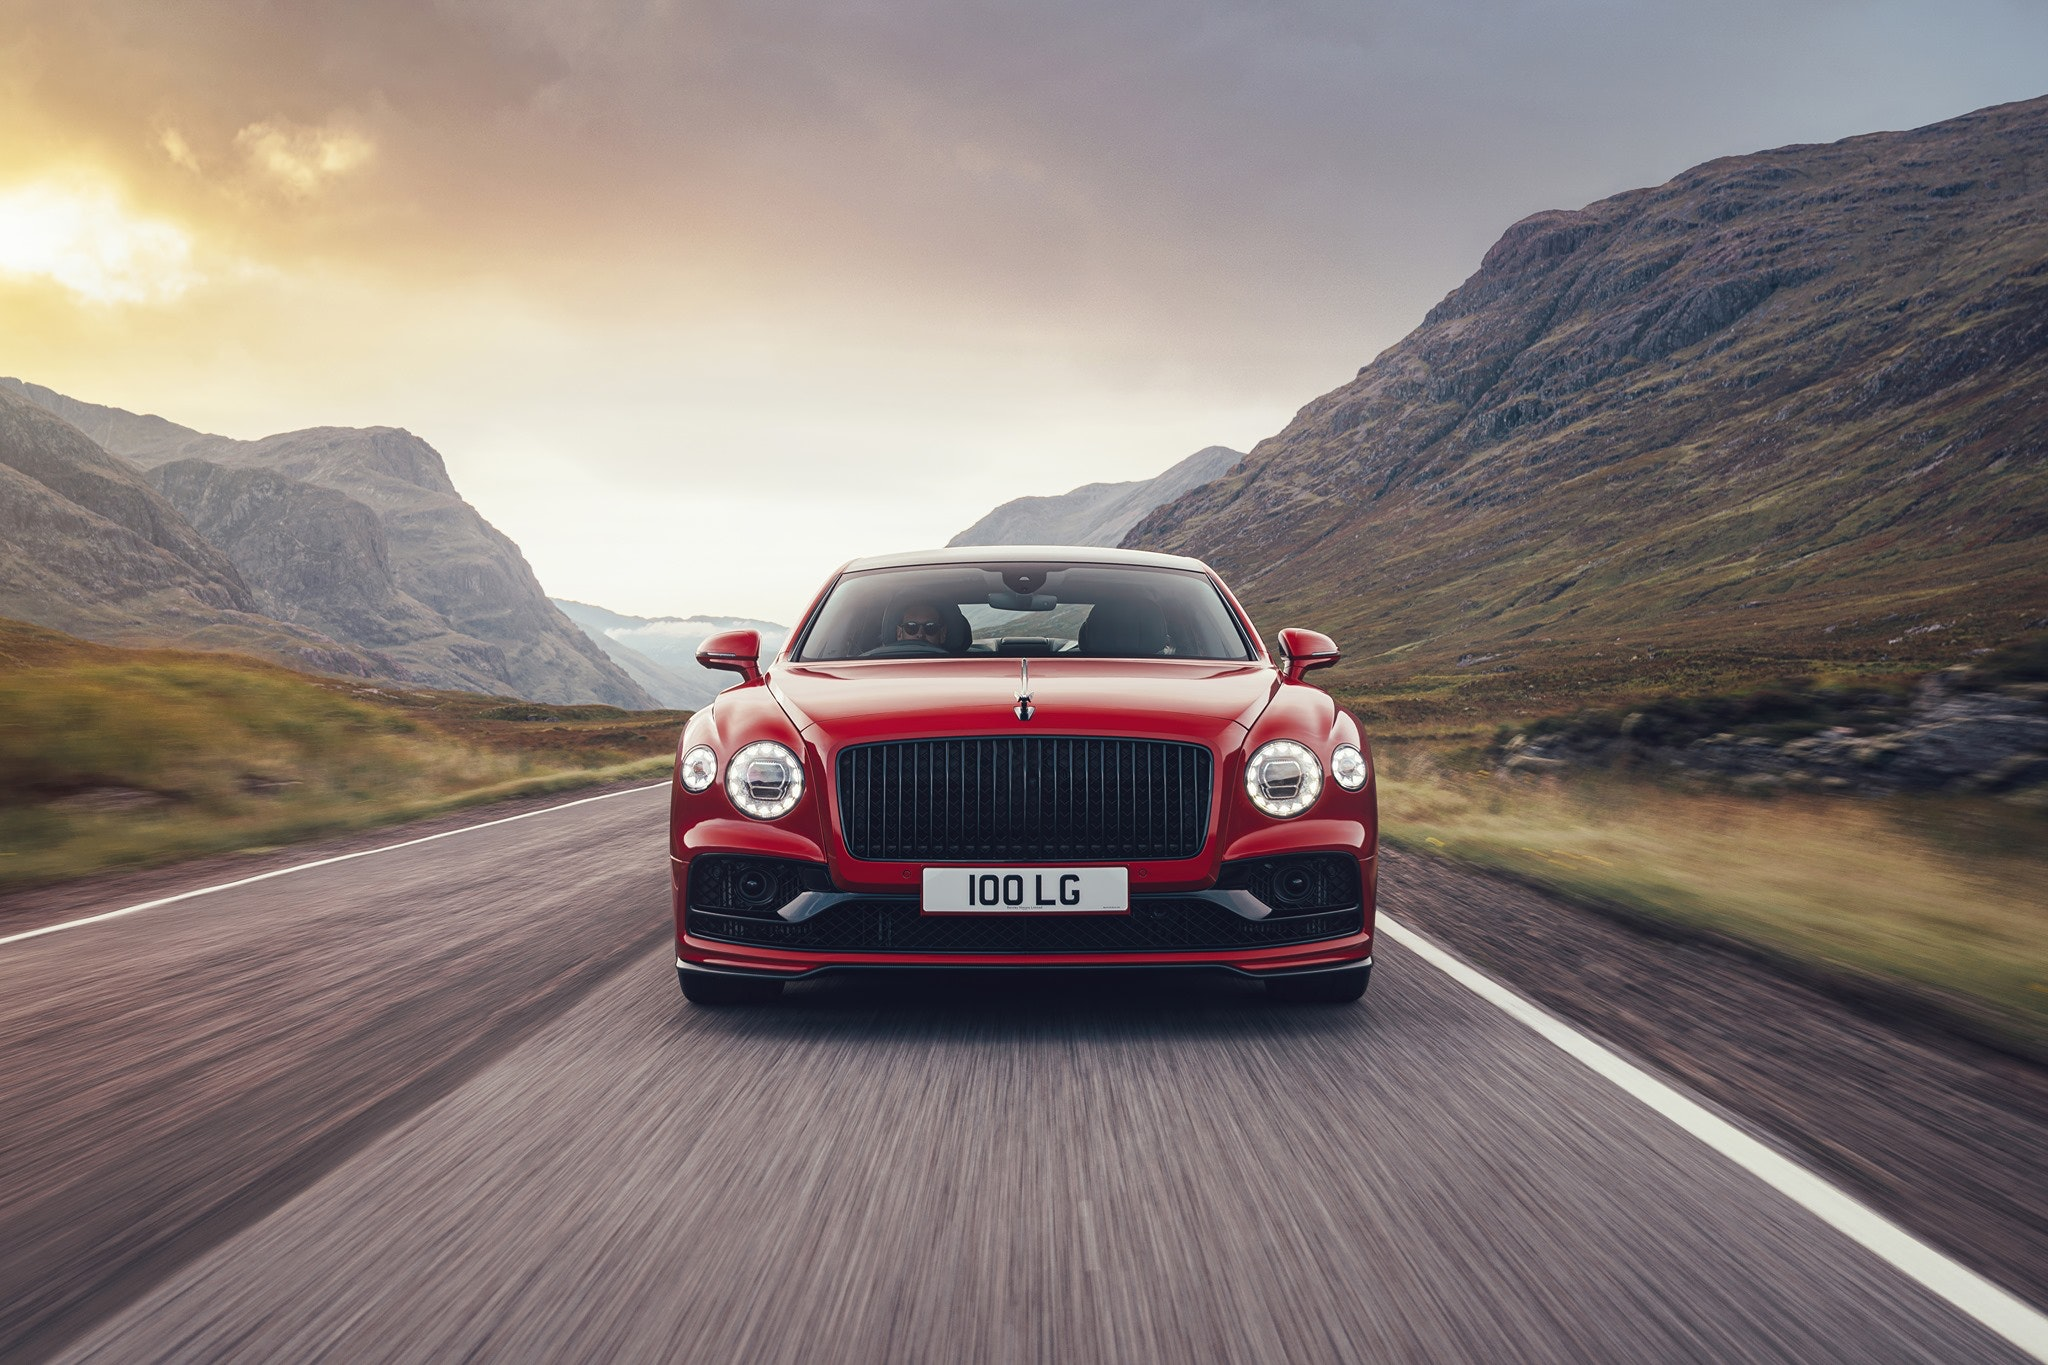 red bentley front grille view